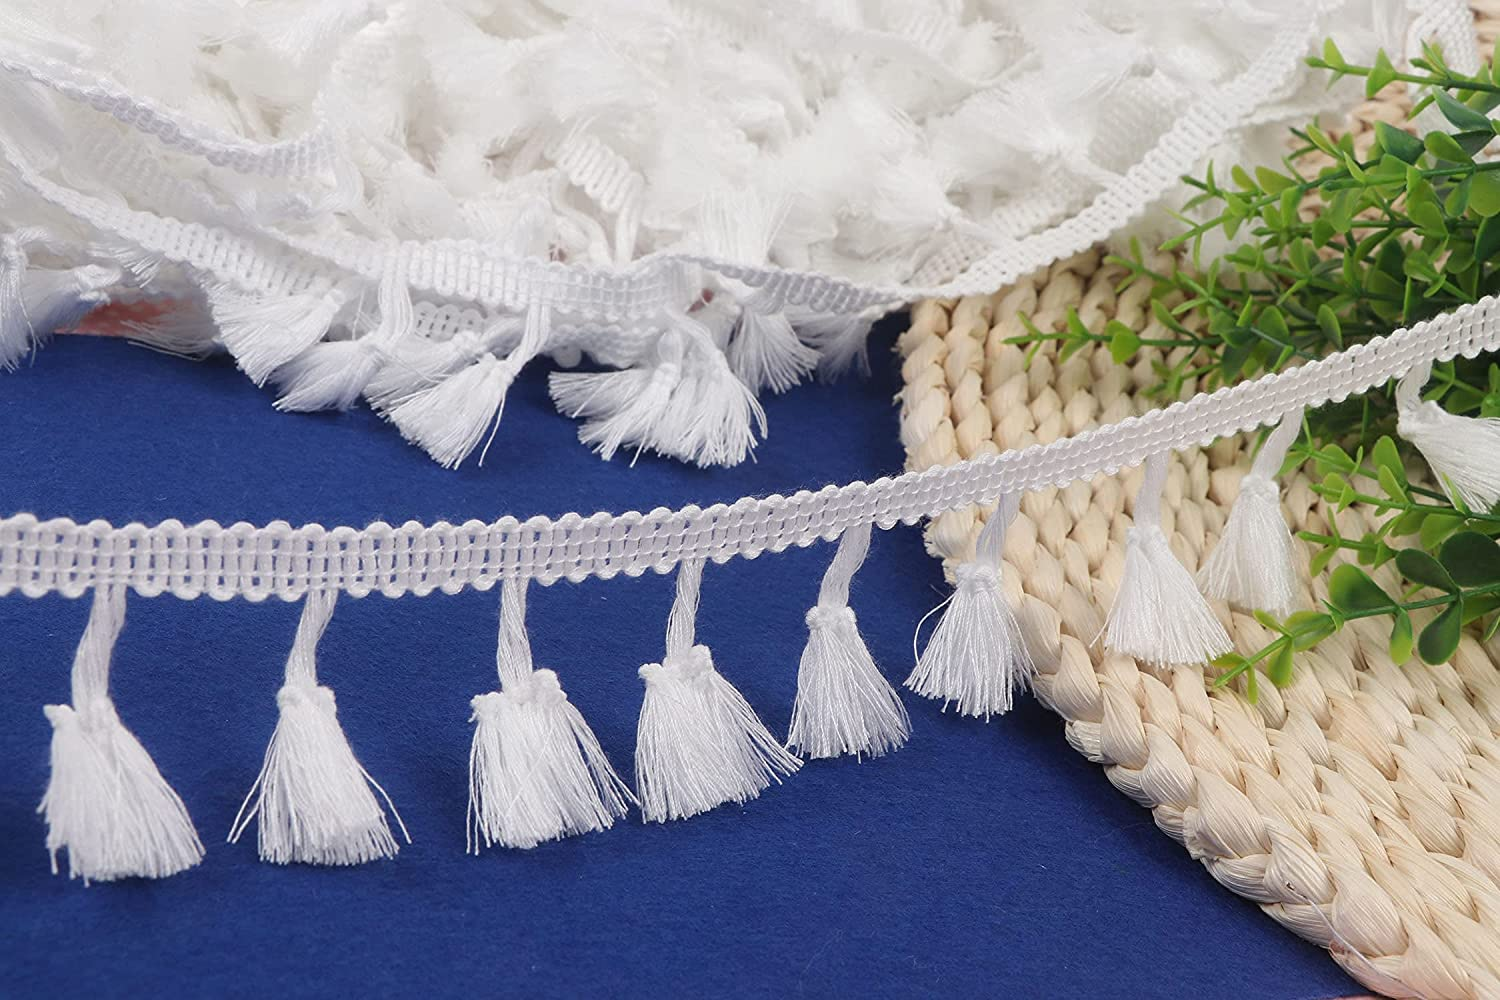 YYCRAFT 10 Yards Tassel online shopping Fringe Trim S Clothes Curtain Max 88% OFF Ribbon for